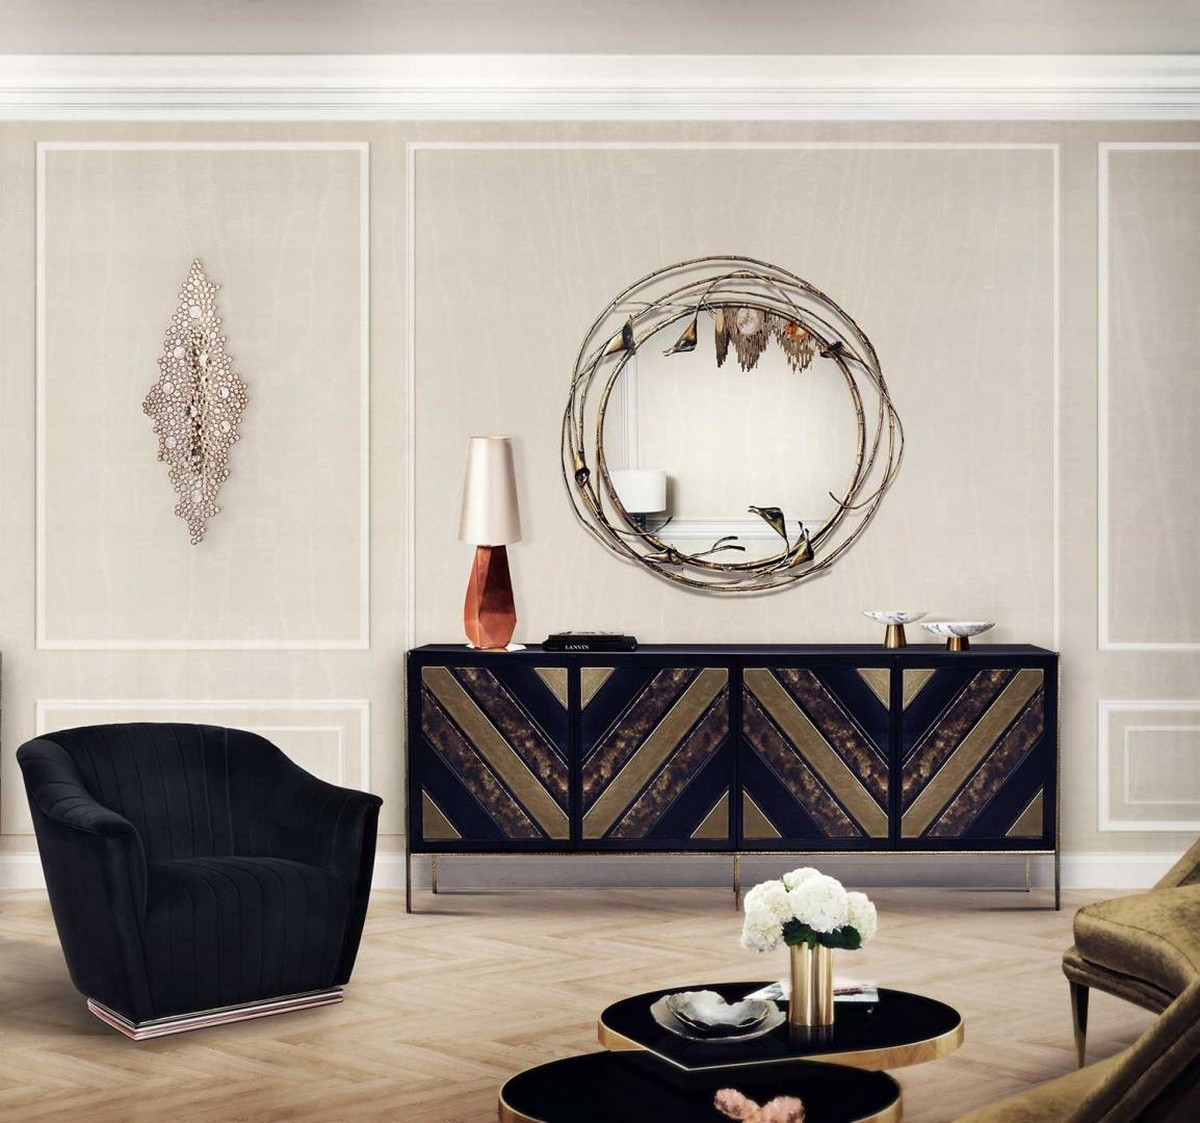 Maison et Objet 2019 Maison et Objet 2019: Luxury Mirror Designs by Covet House stella2